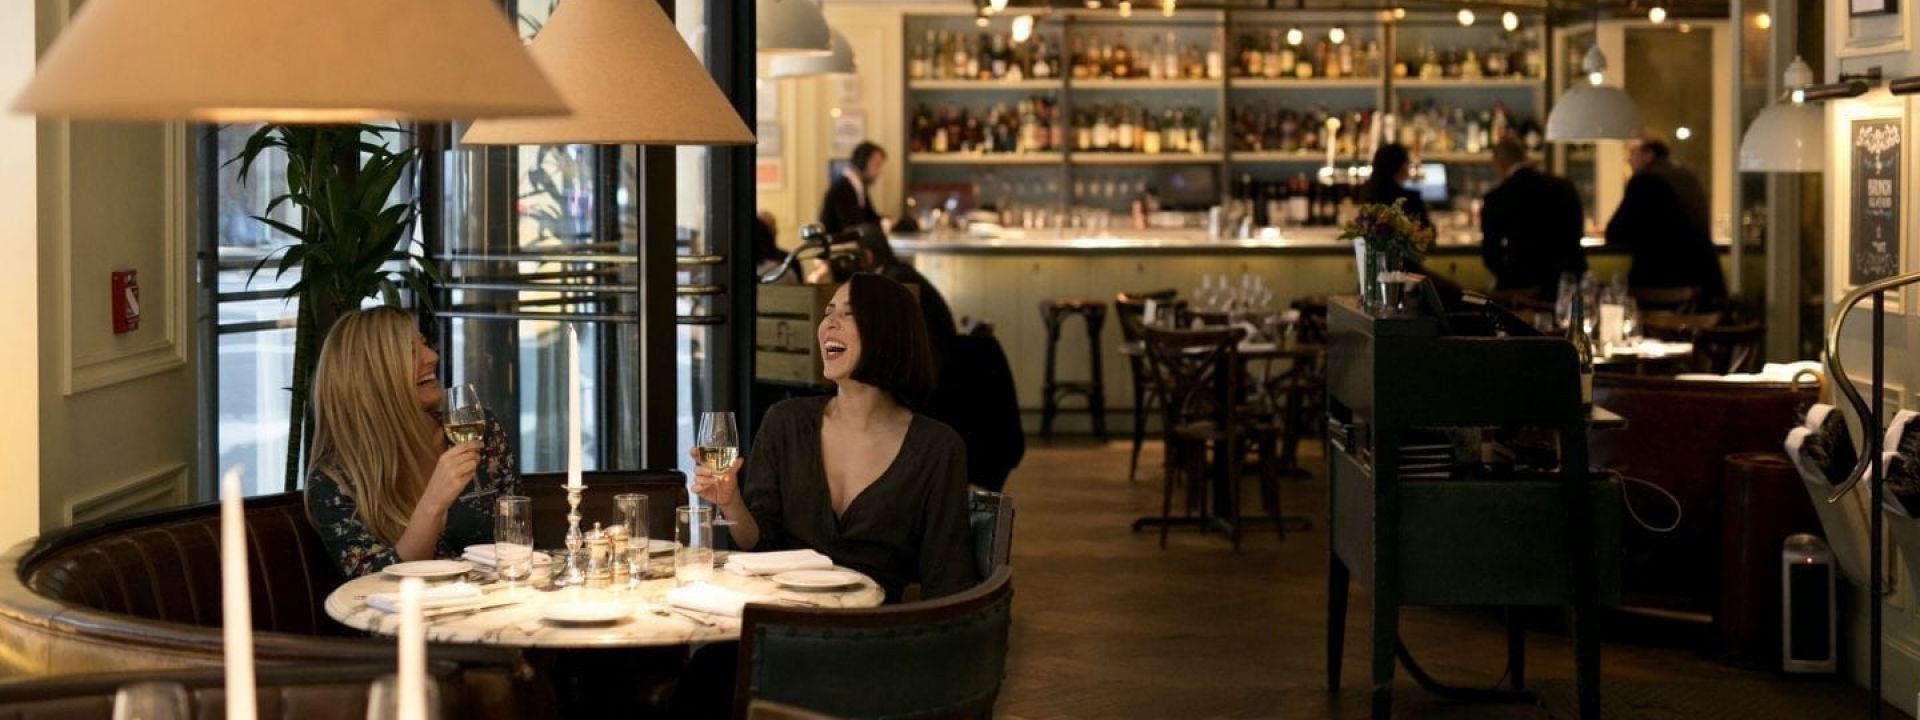 Two women laughing as they enjoy wine at their table in a restaurant.